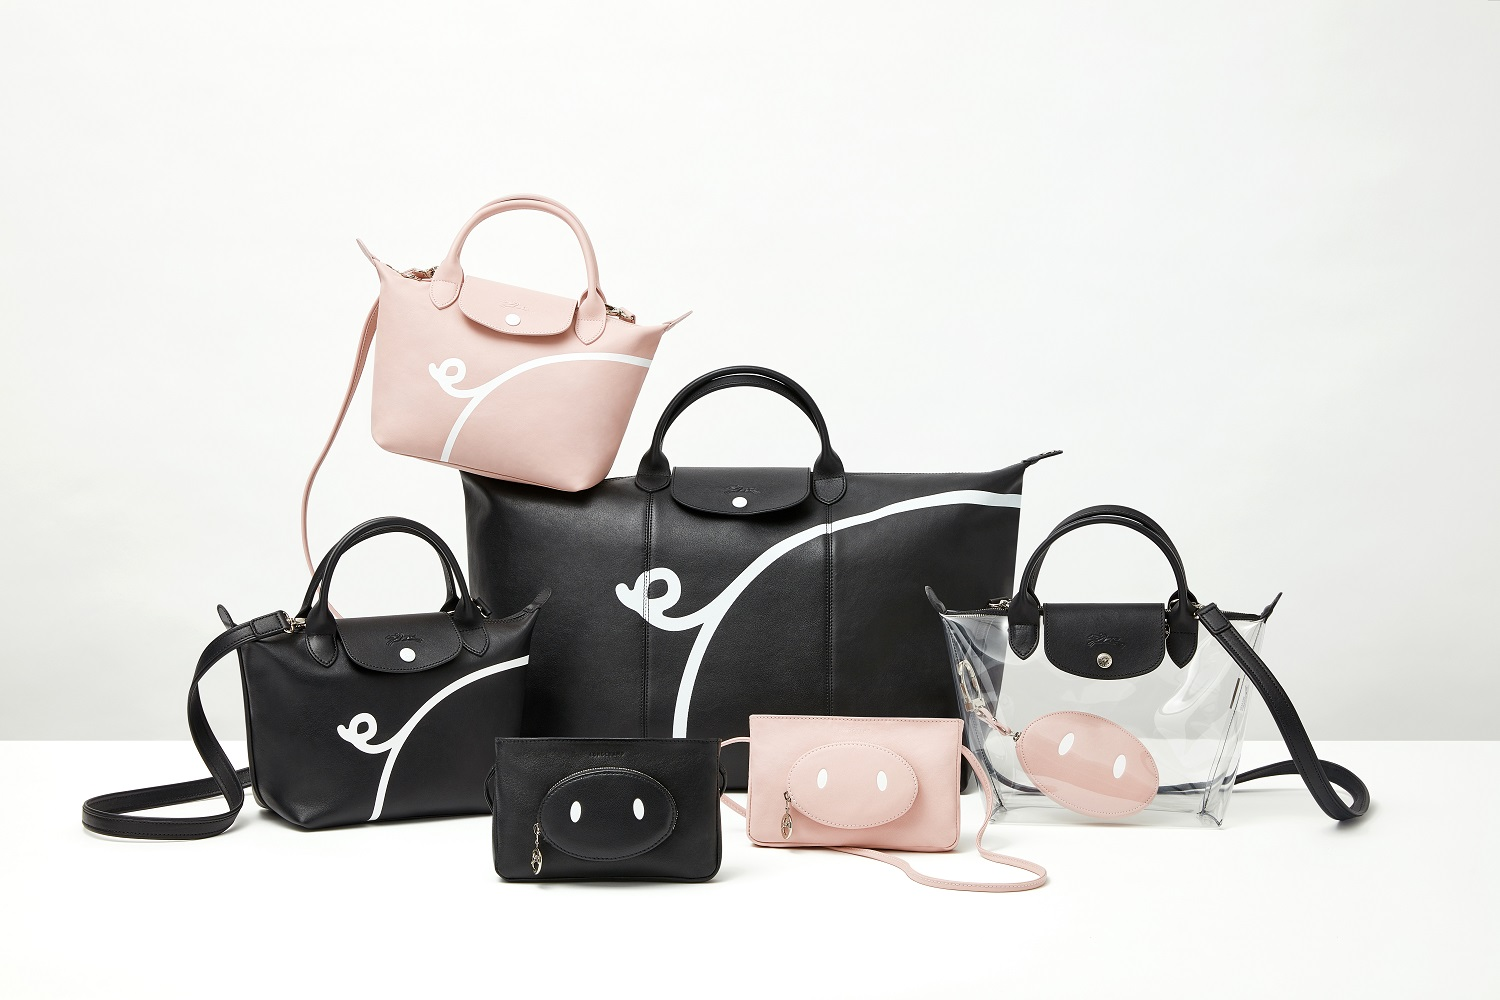 MR. BAGS X LONGCHAMP 庆祝中国猪年